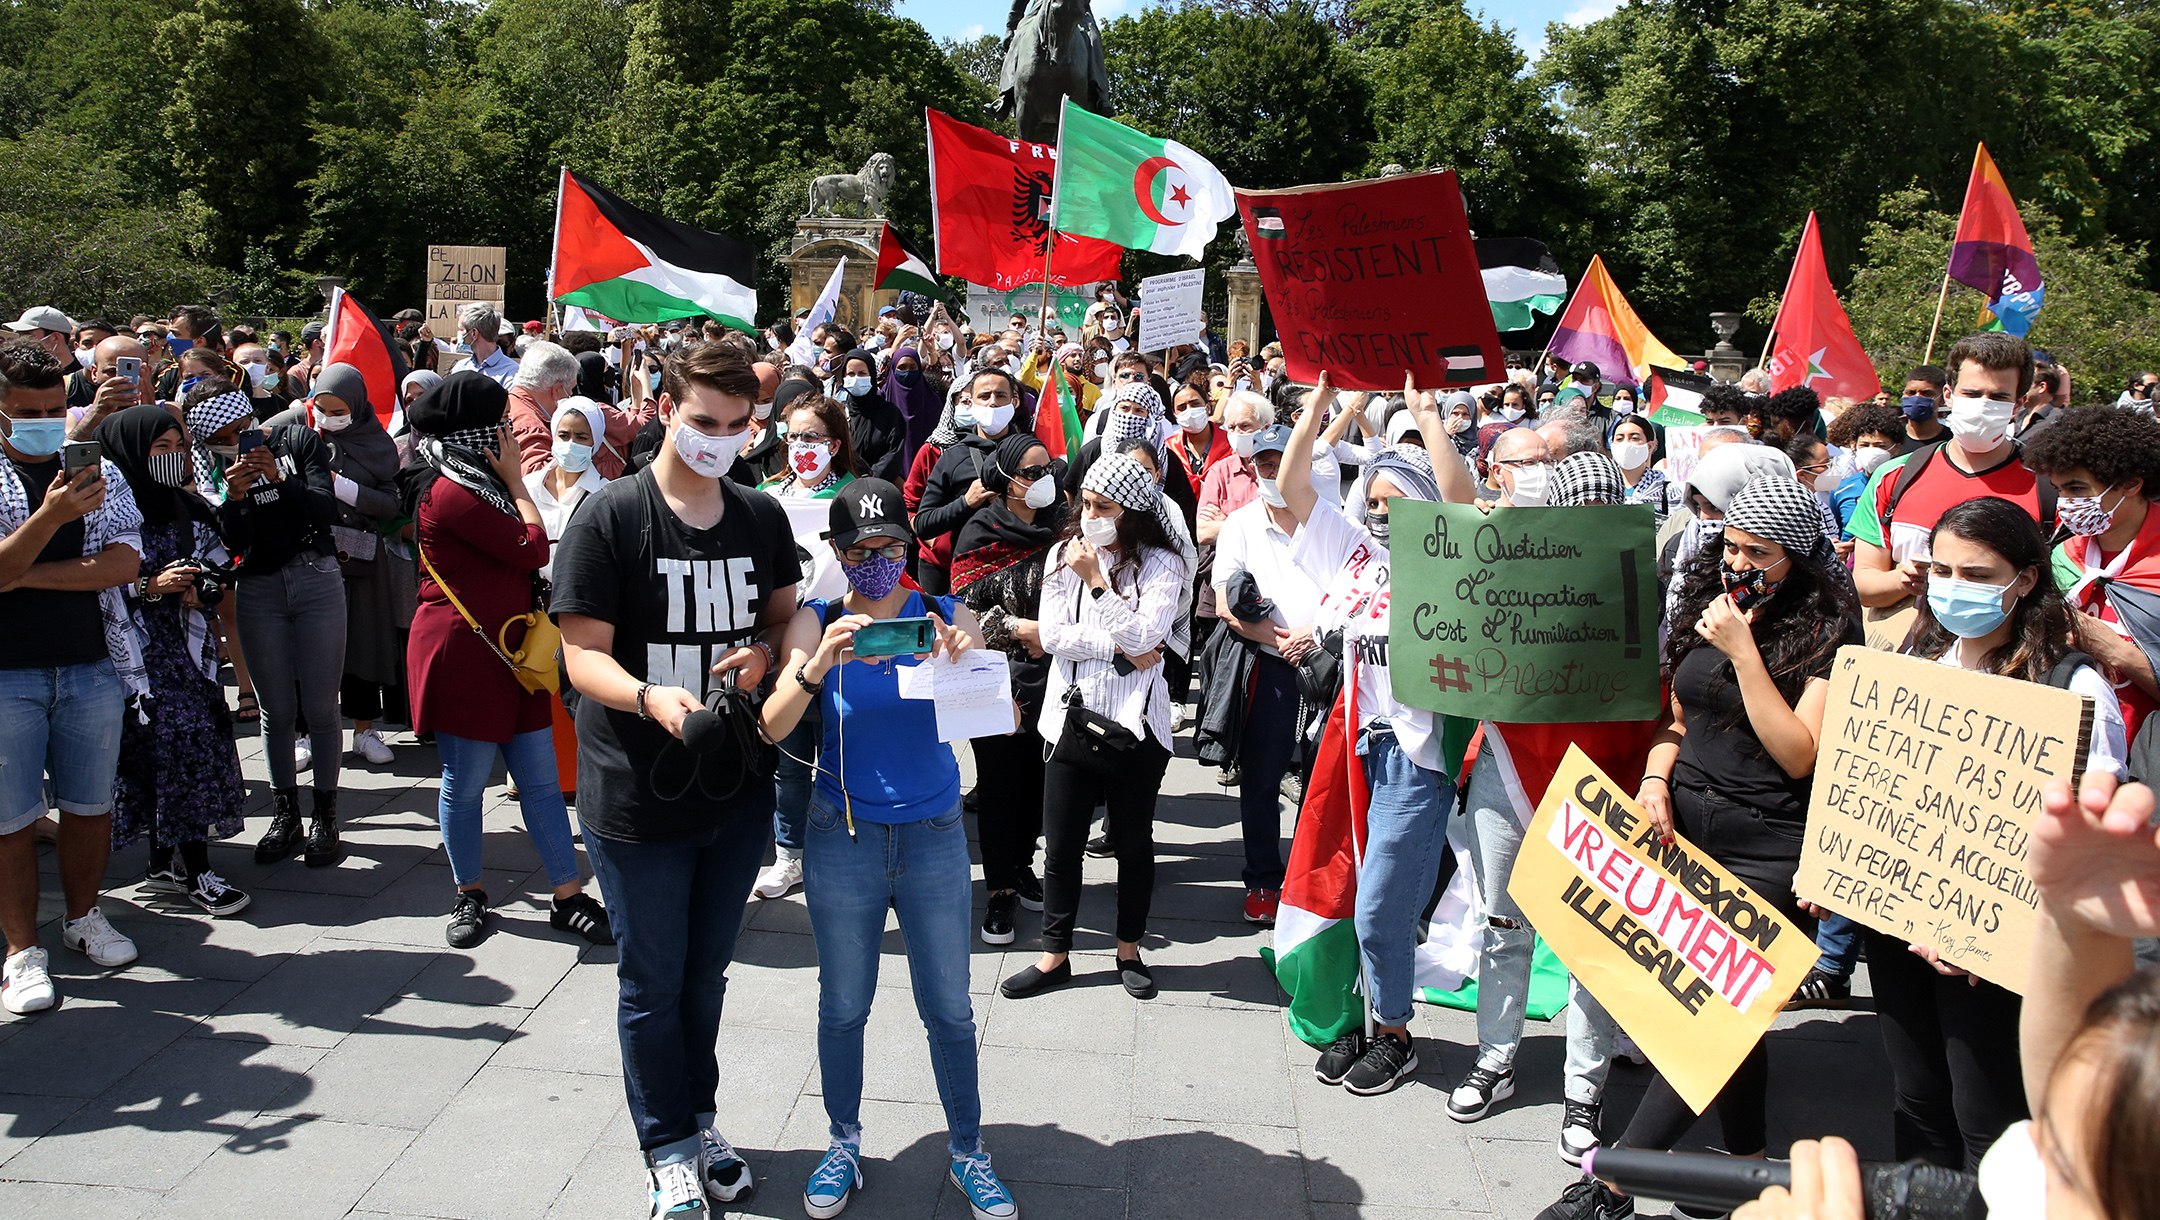 Belgian government funds groups that promise to weaken influence of pro-Israel voices